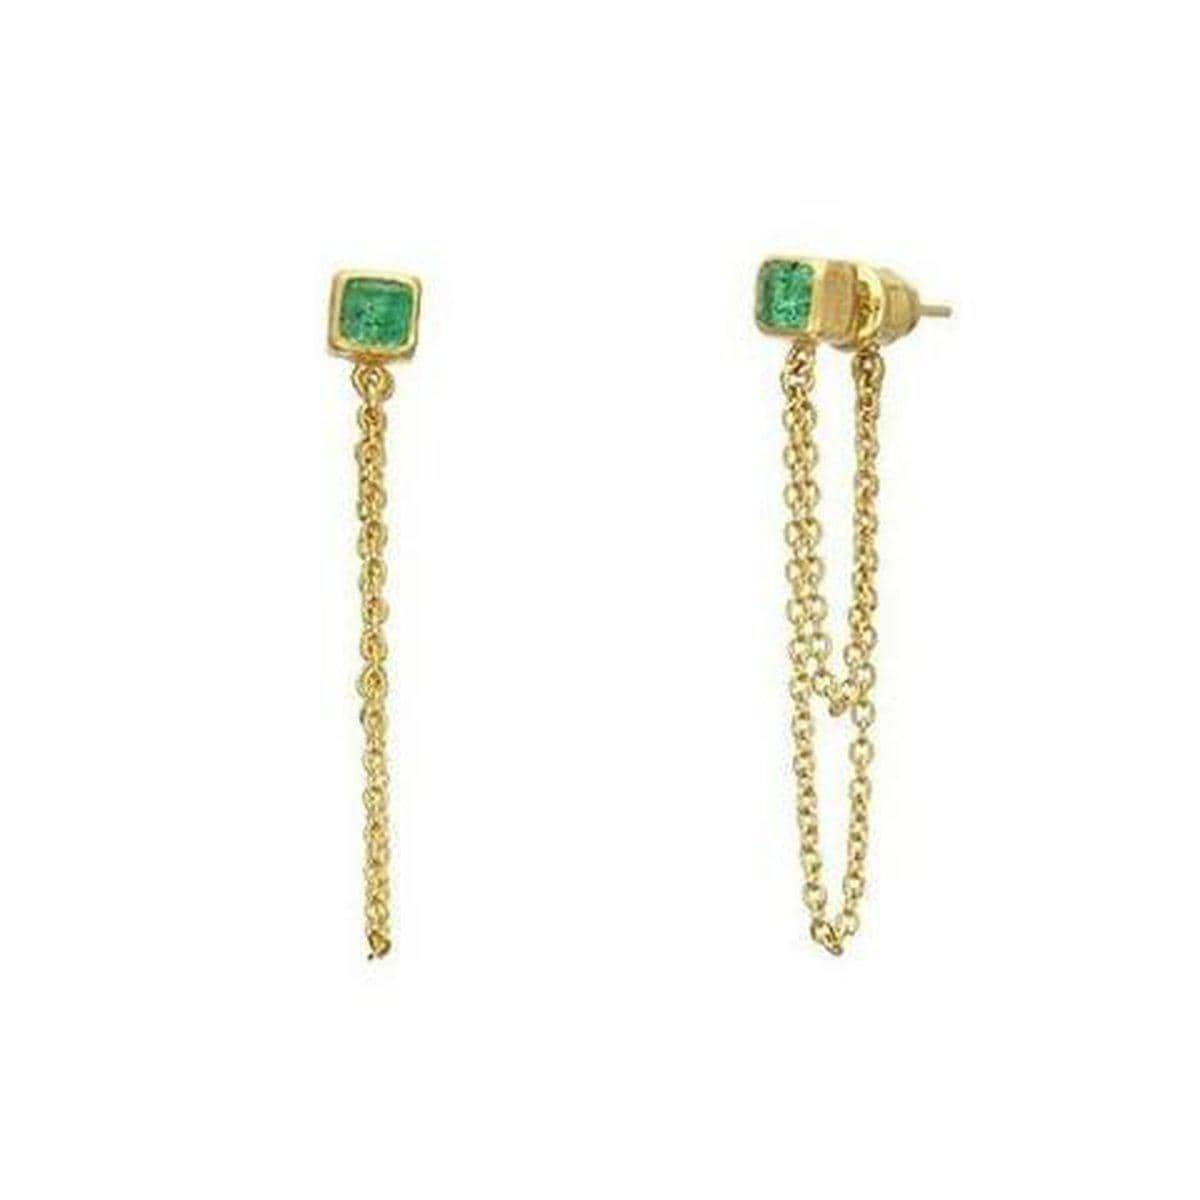 Rainbow 24K Gold Emerald Earrings - E-LE-1CEM-2CH-L-PL-GURHAN-Renee Taylor Gallery